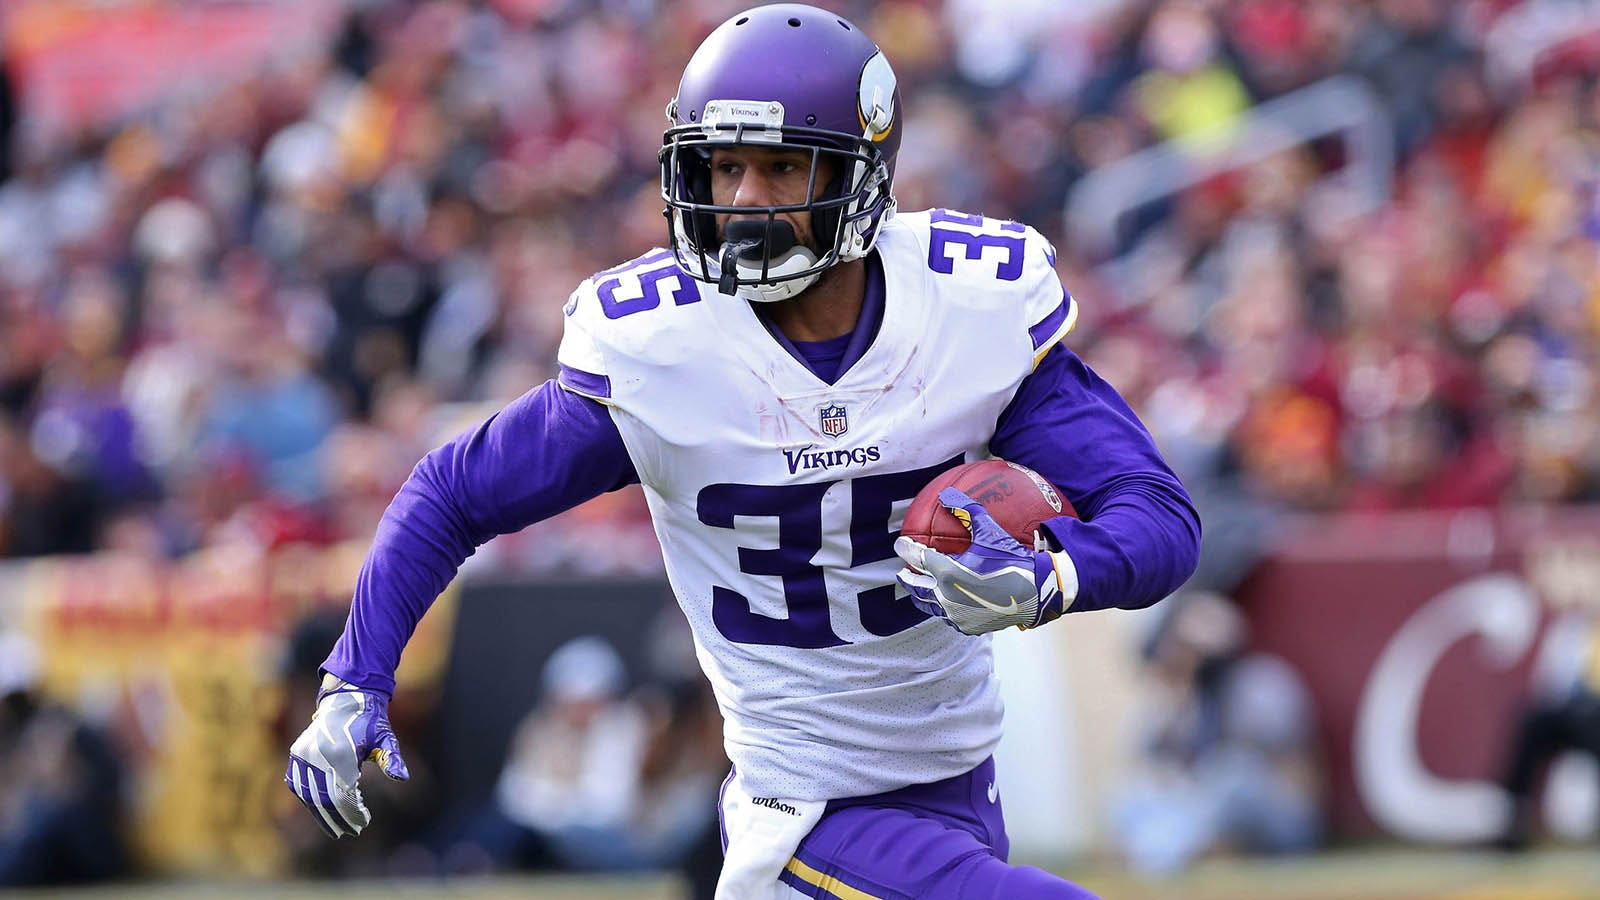 Injuries give Sherels, Treadwell chance to come back 'home' to ...